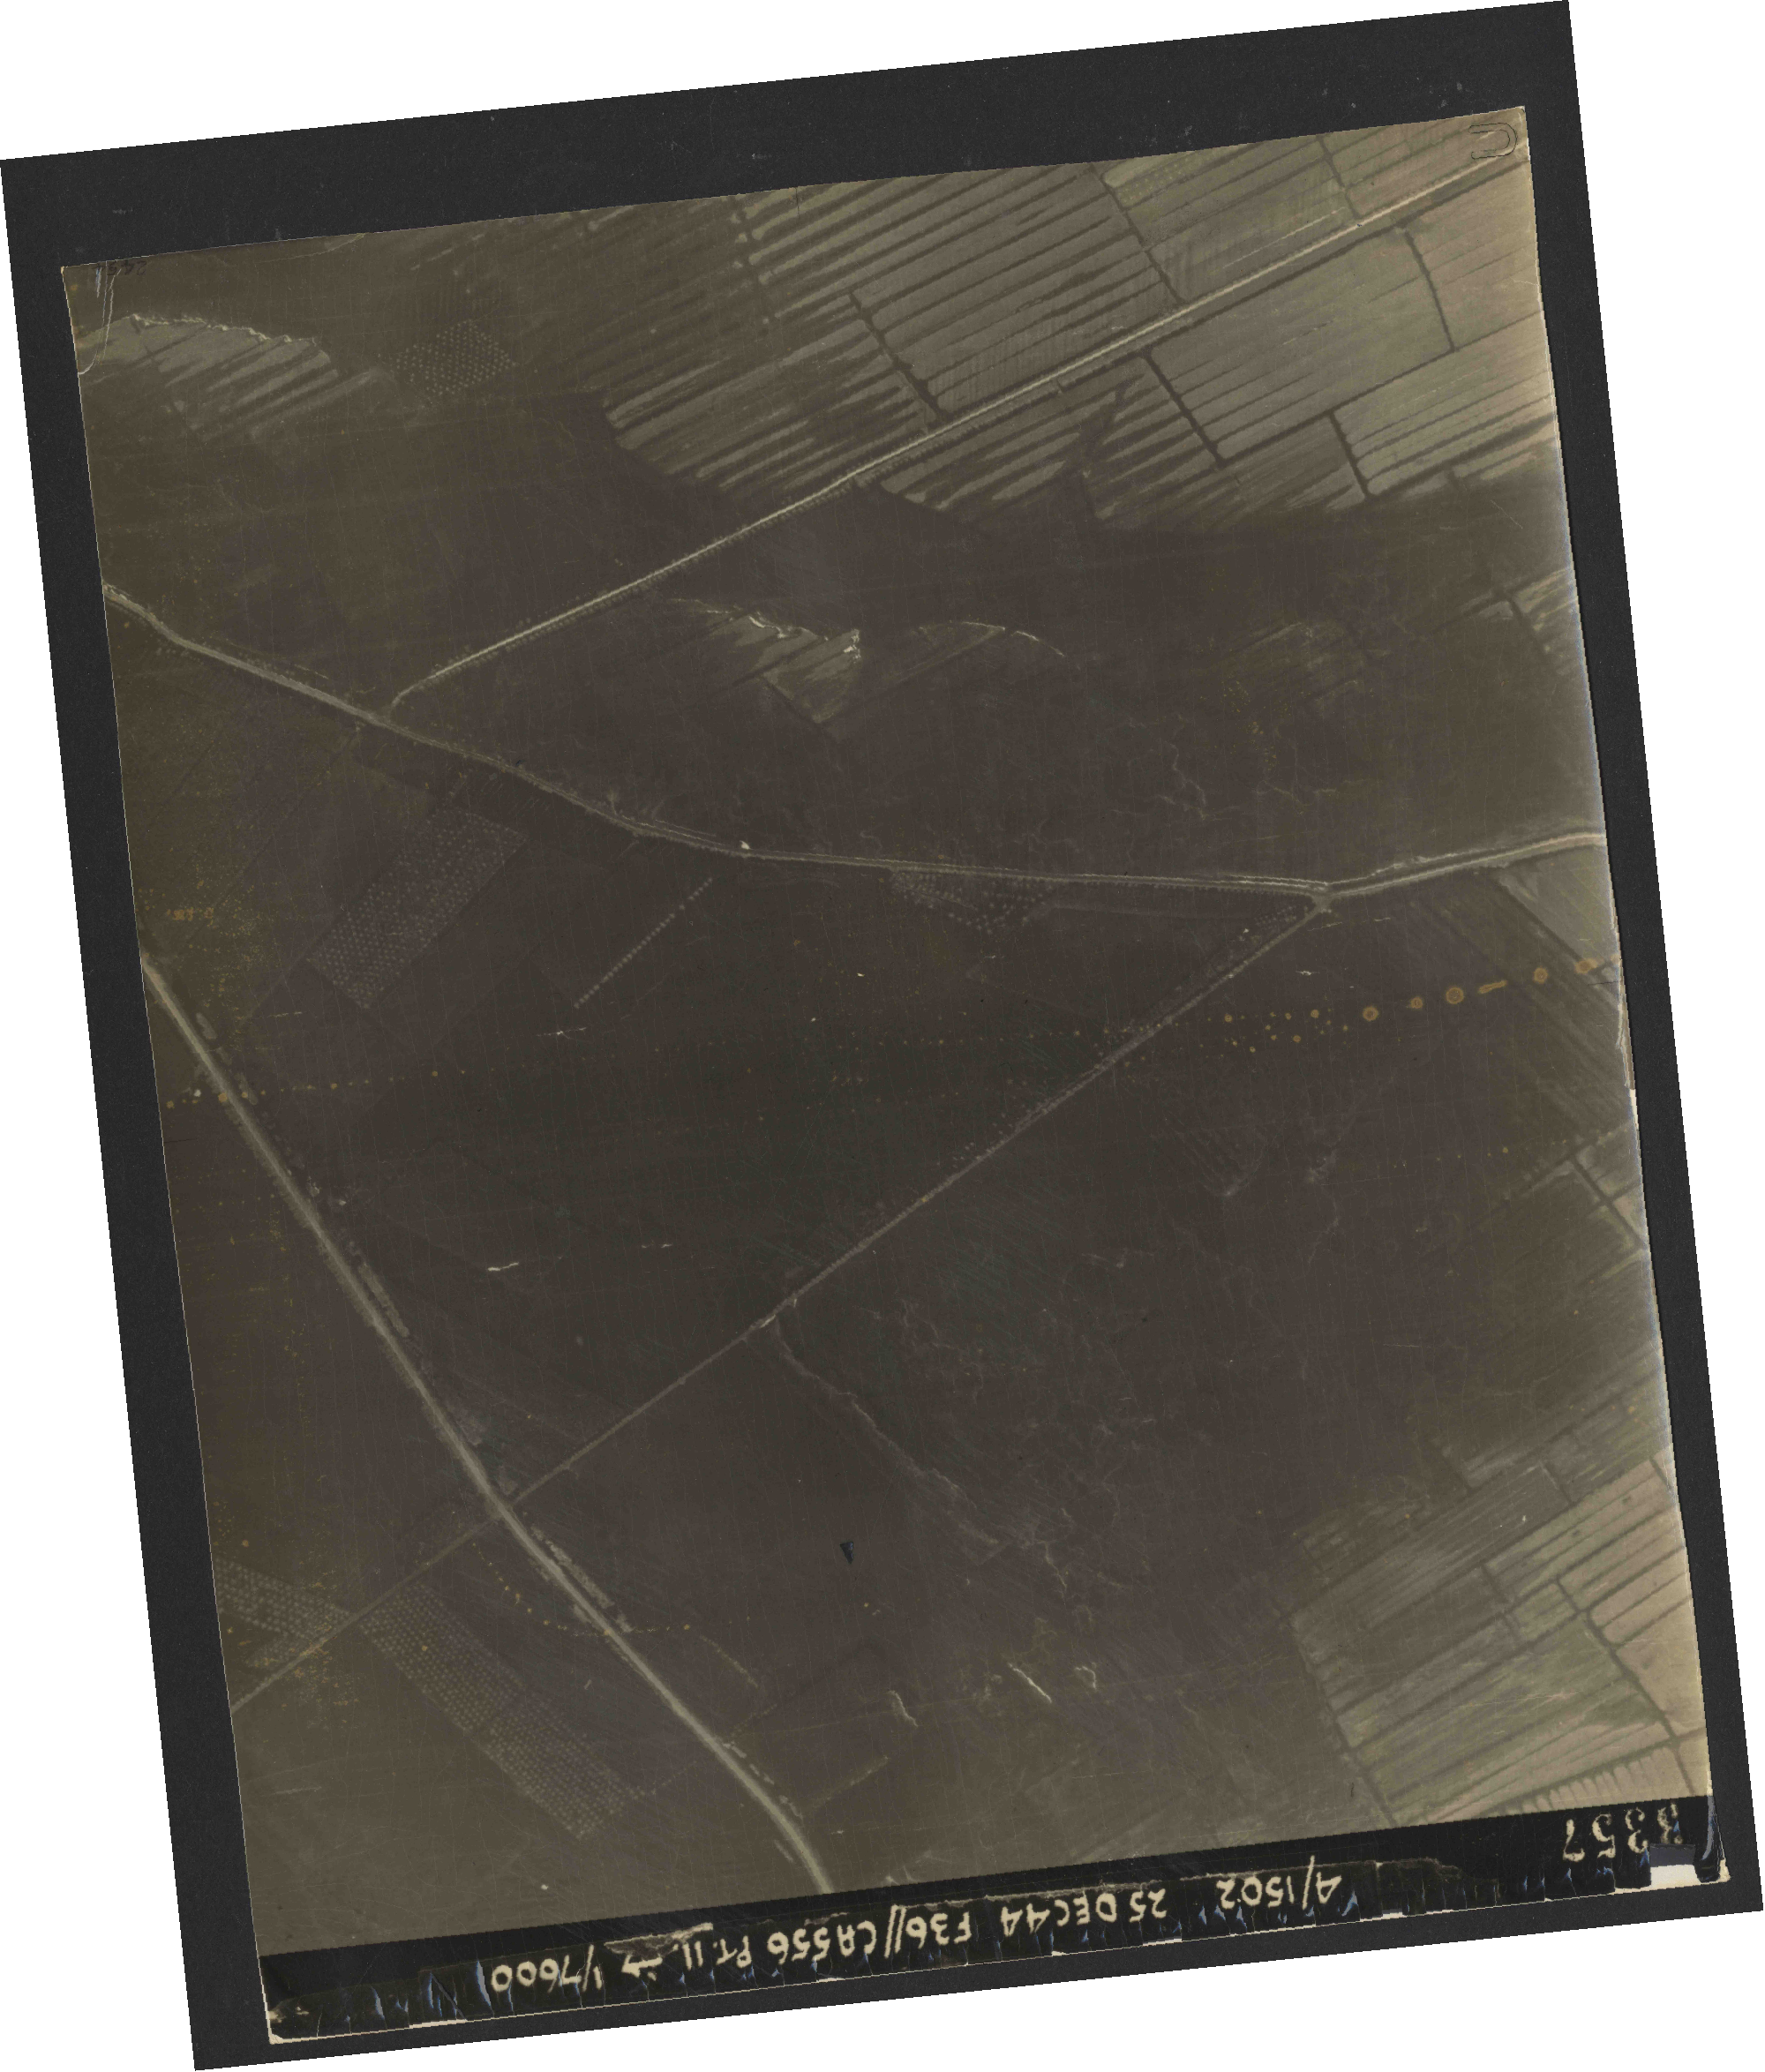 Collection RAF aerial photos 1940-1945 - flight 306, run 12, photo 3357